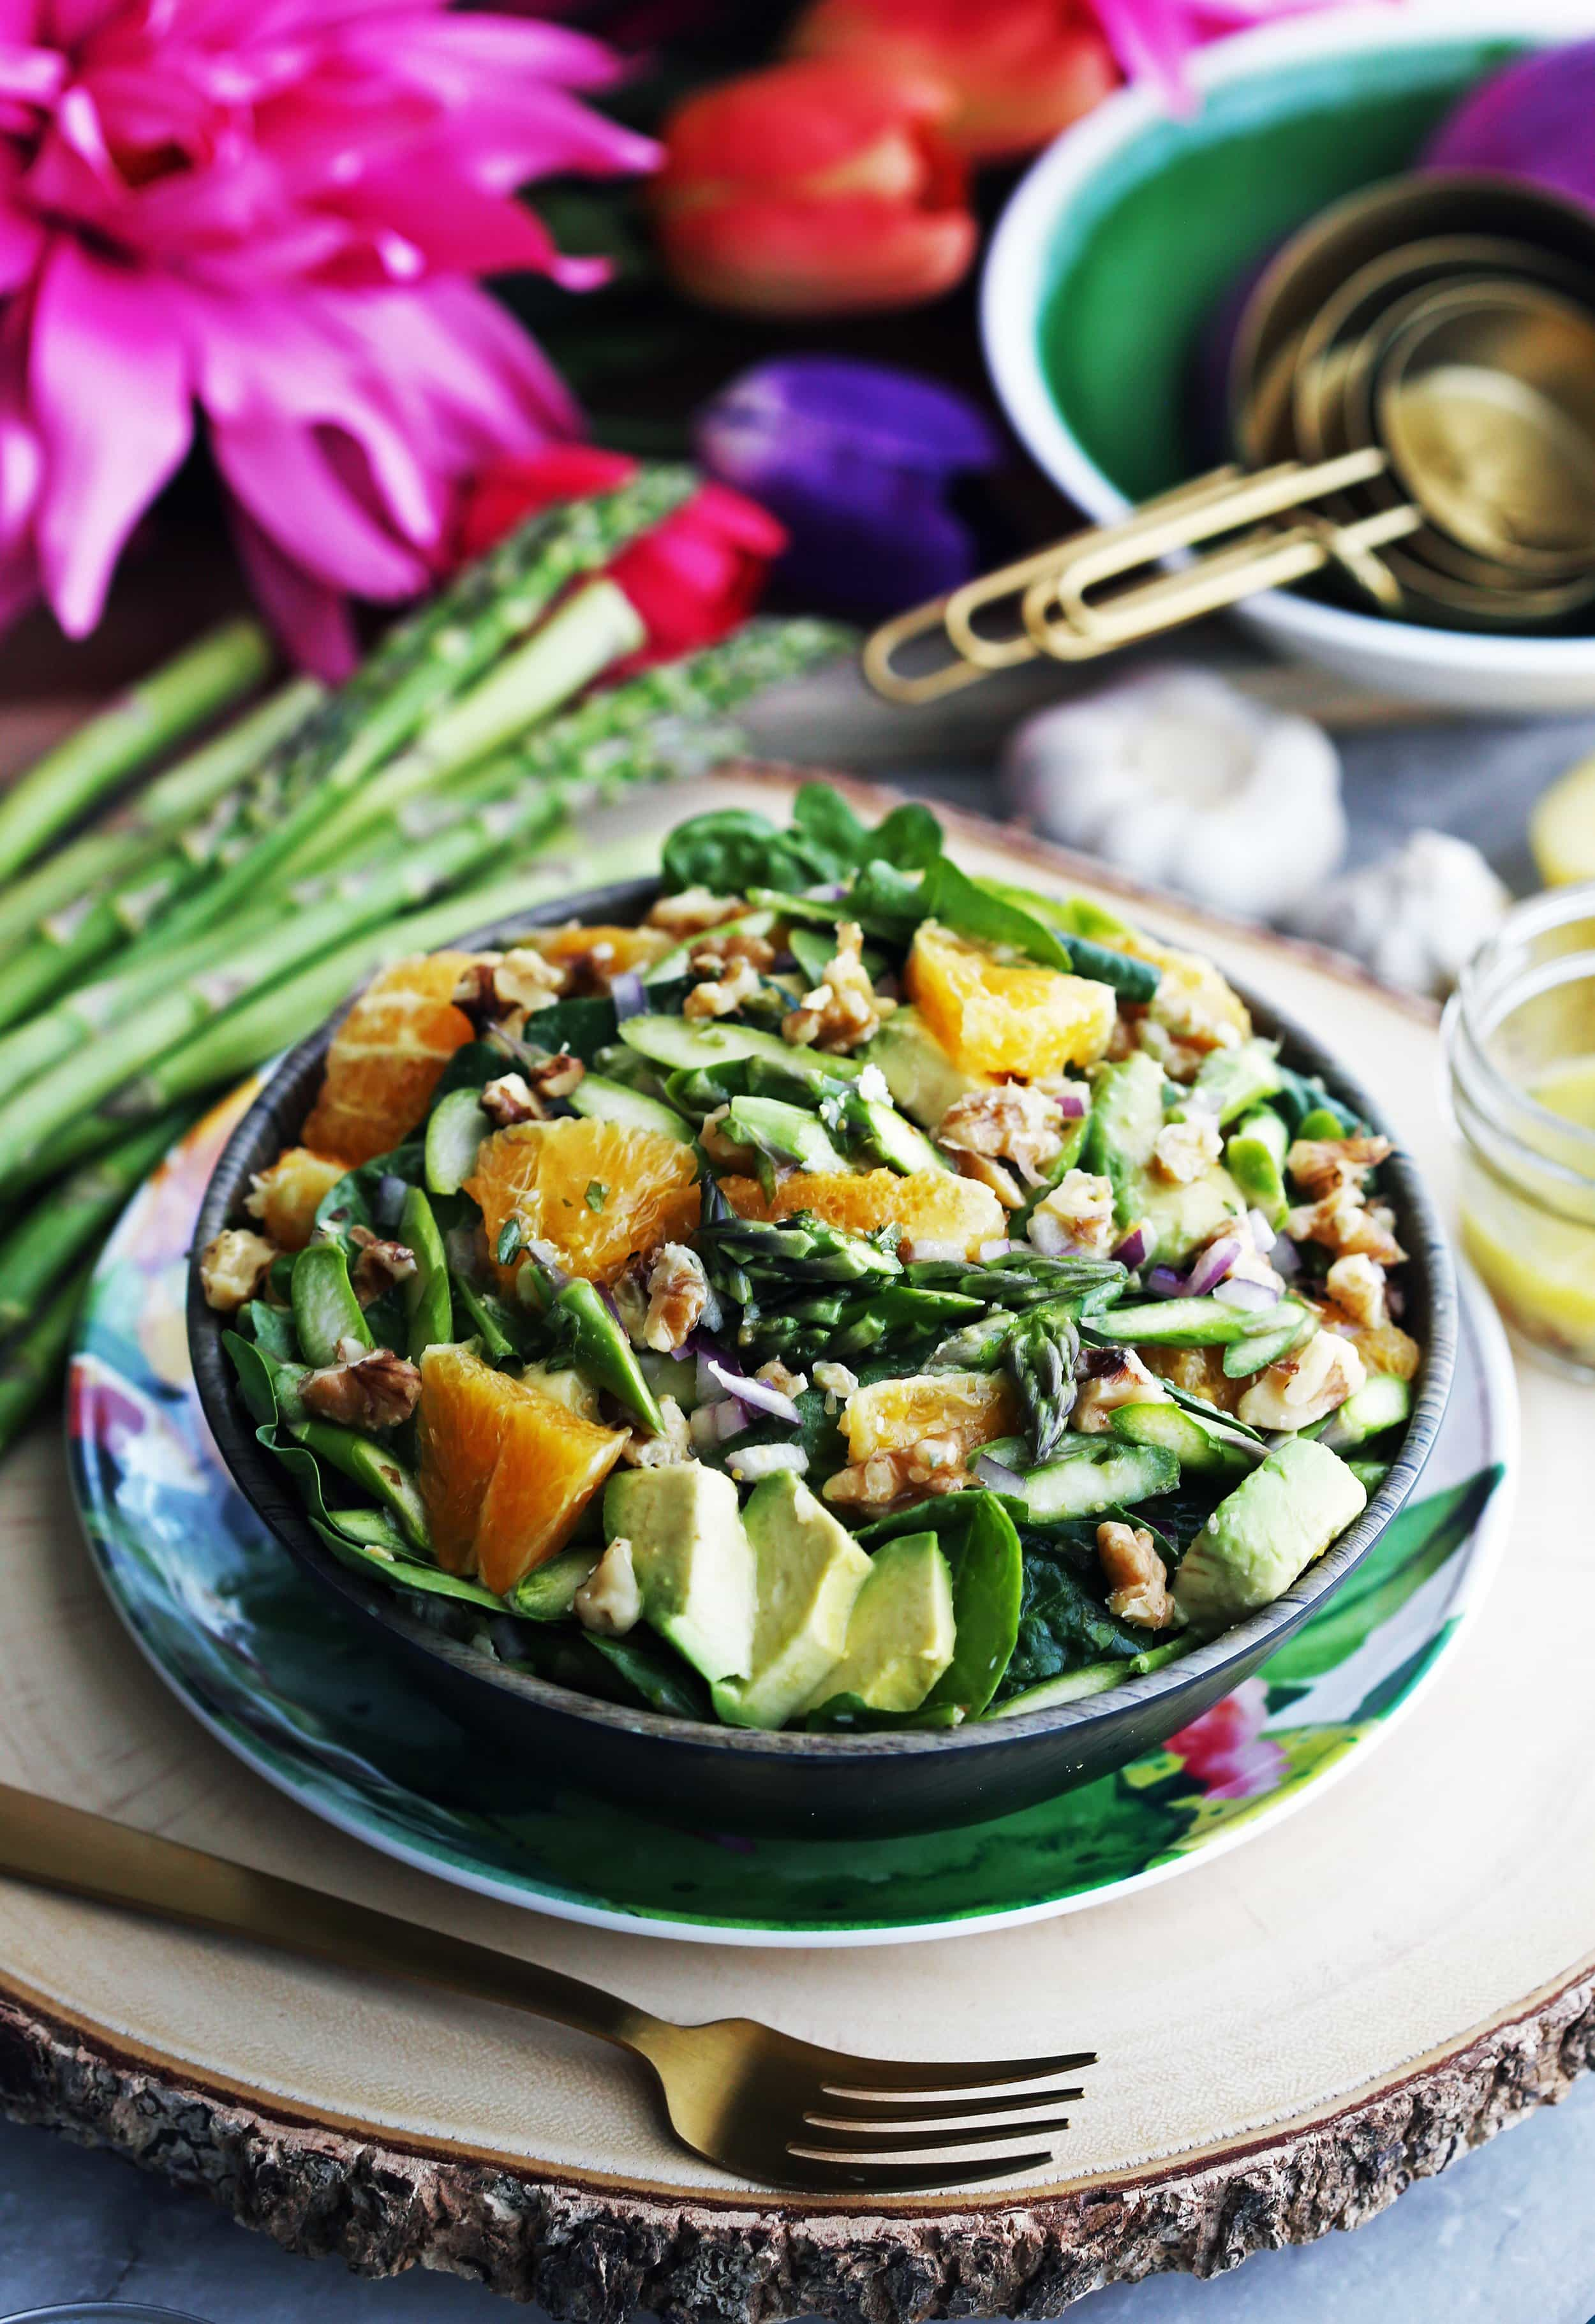 A wooden bowl full of Asparagus Orange Spinach Salad with Basil Lemon Vinaigrette along with a fork beside it.